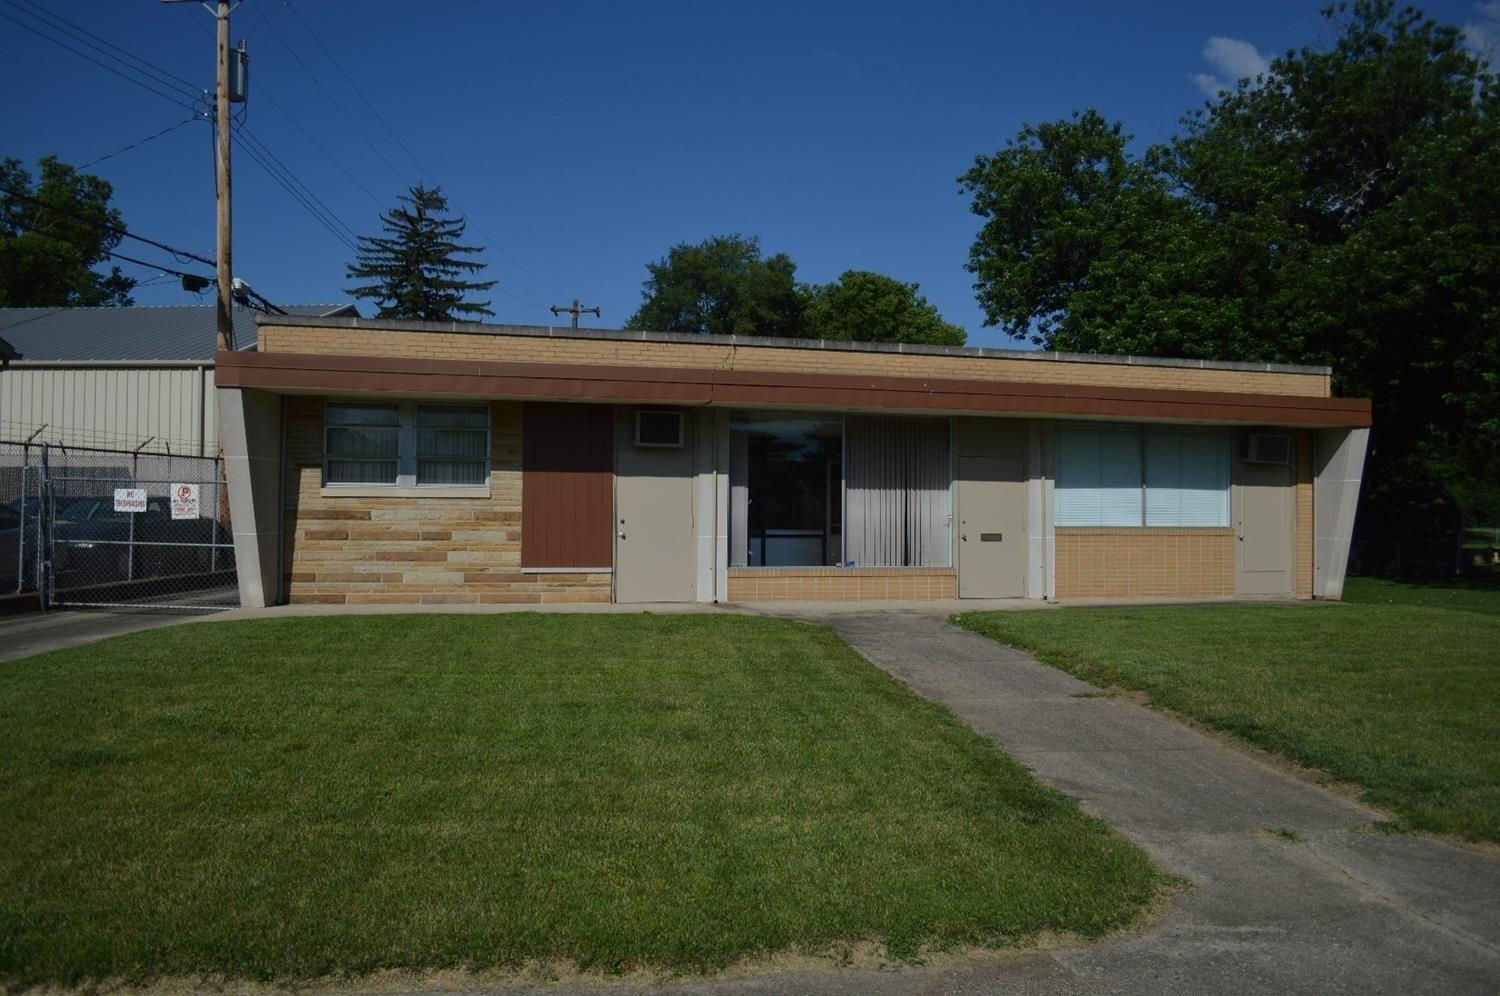 255 Campbell Dr